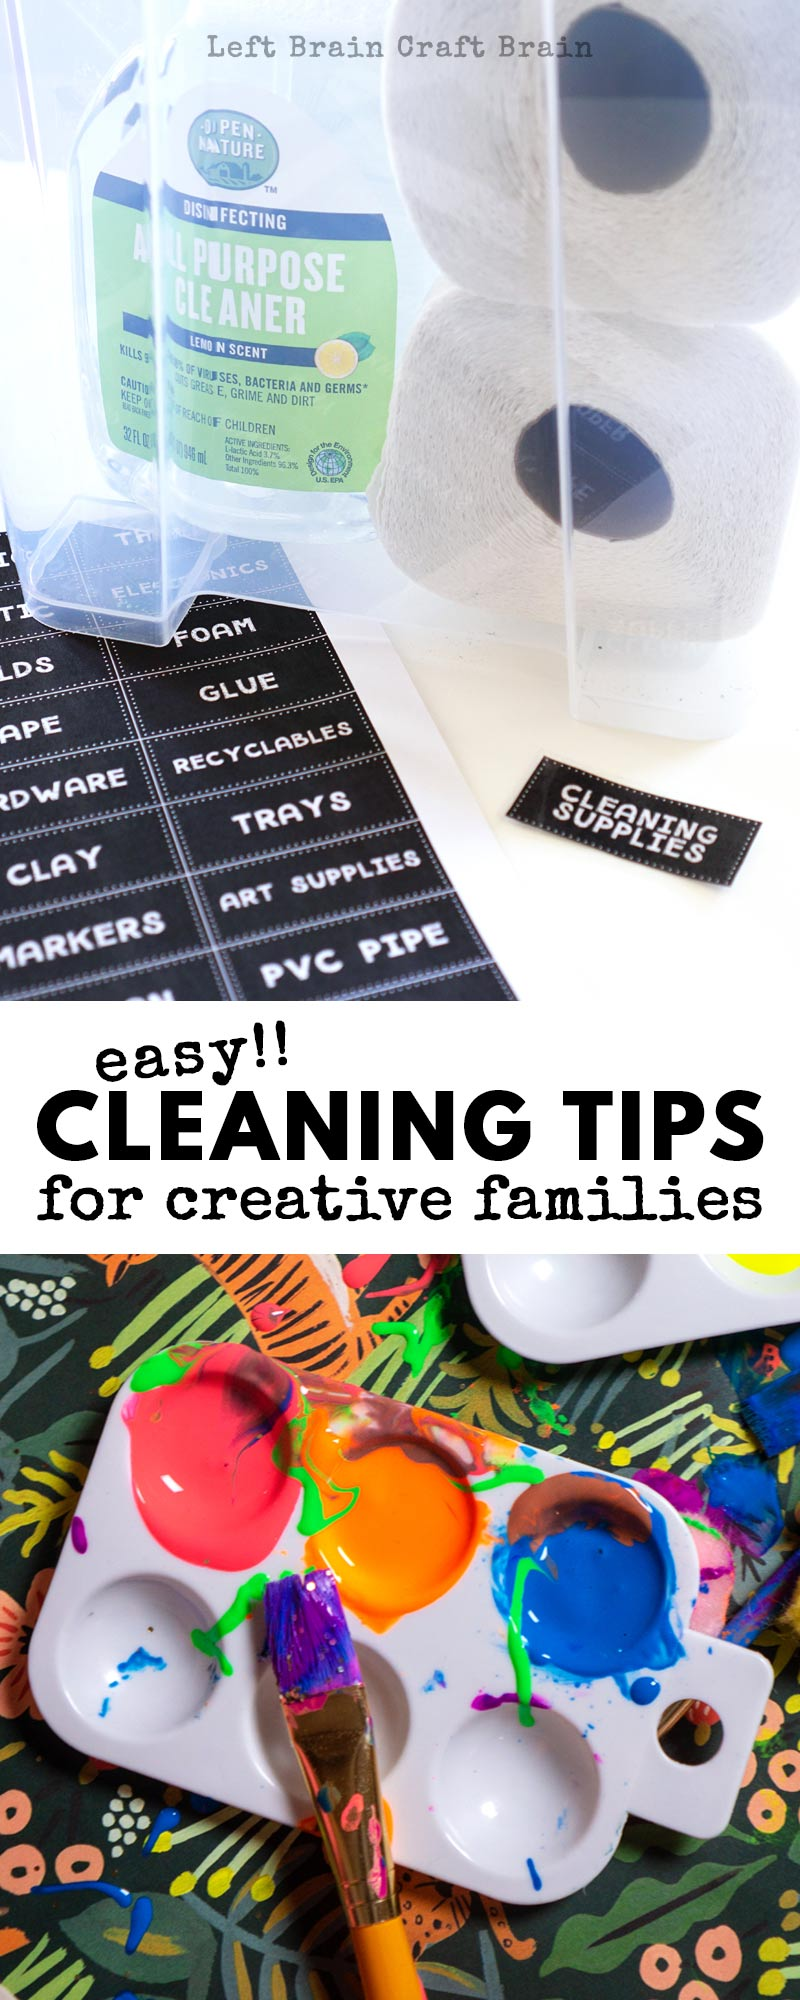 If you have a creative family, your house may be filled with supplies and projects. Try these simple cleaning tips for creative families to keep your house in order without sacrificing the fun.